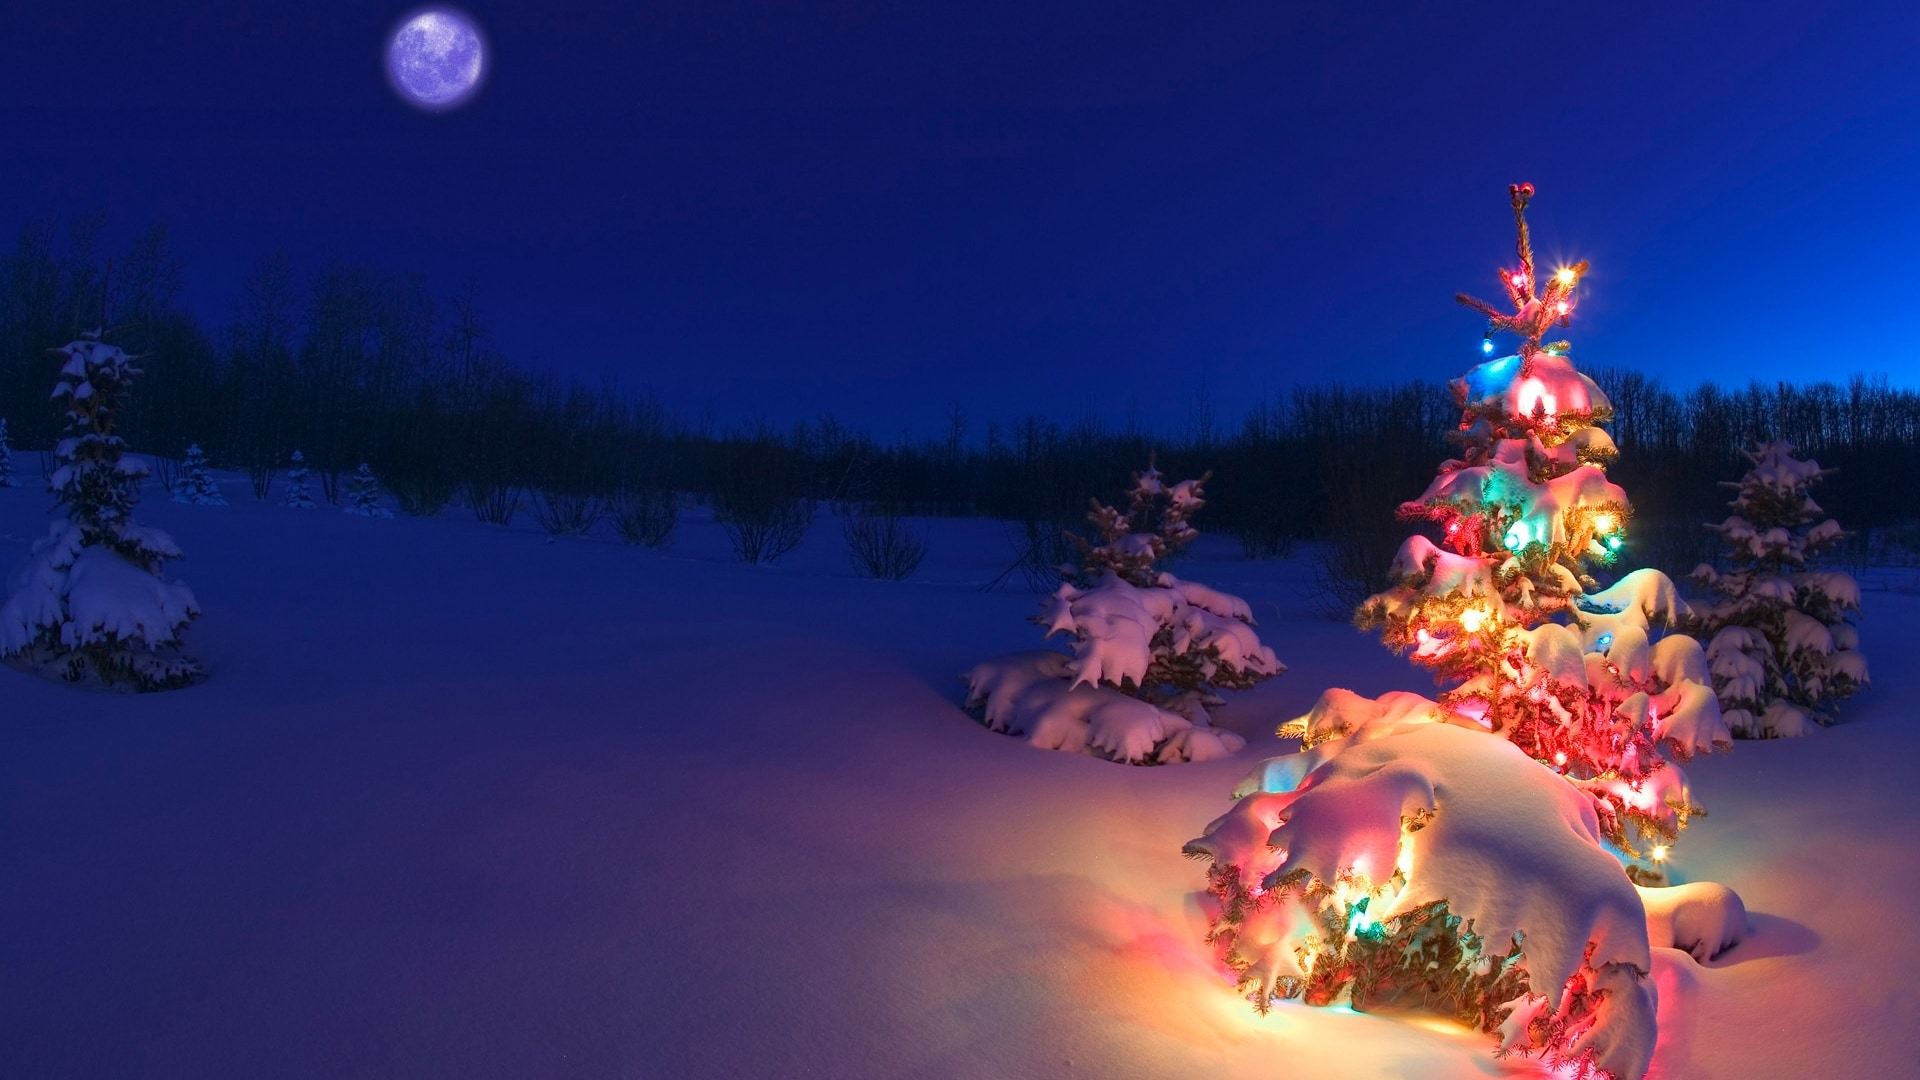 Top 24 Best Free Hd Christmas Wallpapers: Get The Latest HD Christmas Wallpapers For Free